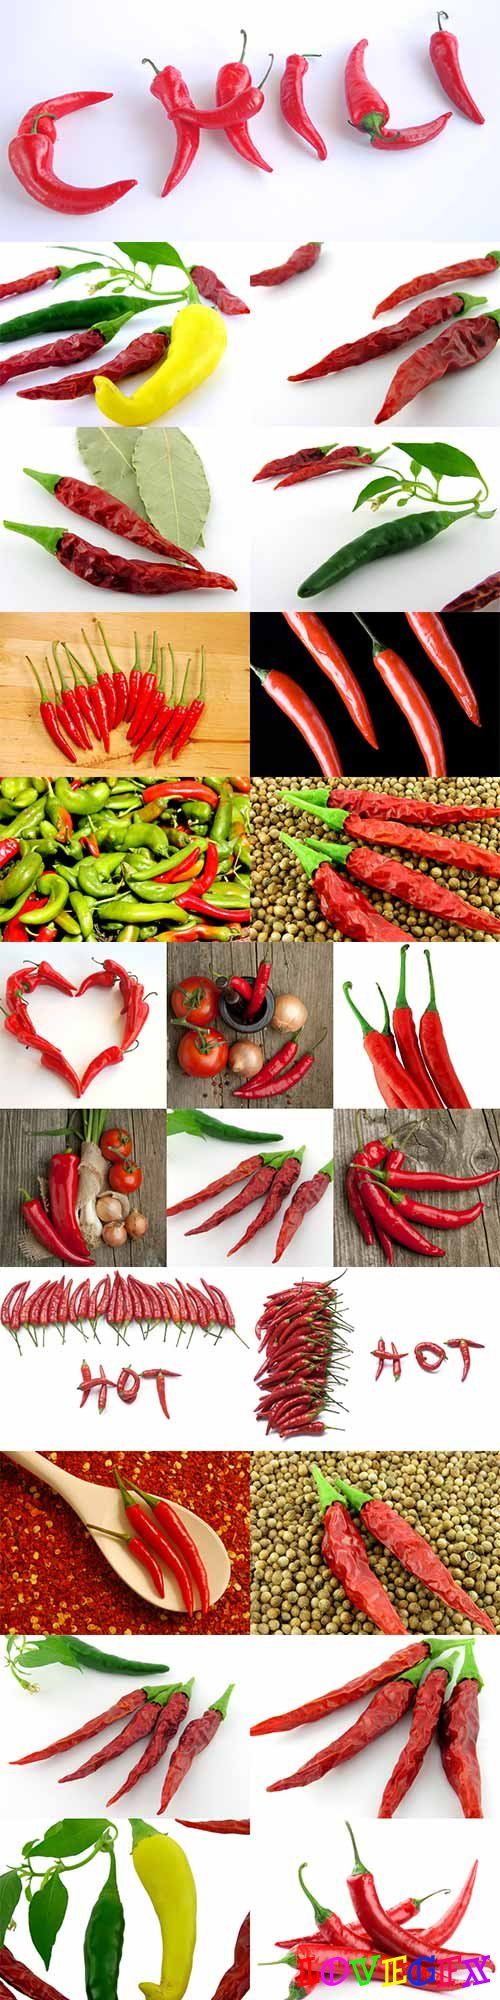 Vegetables - chili peppers